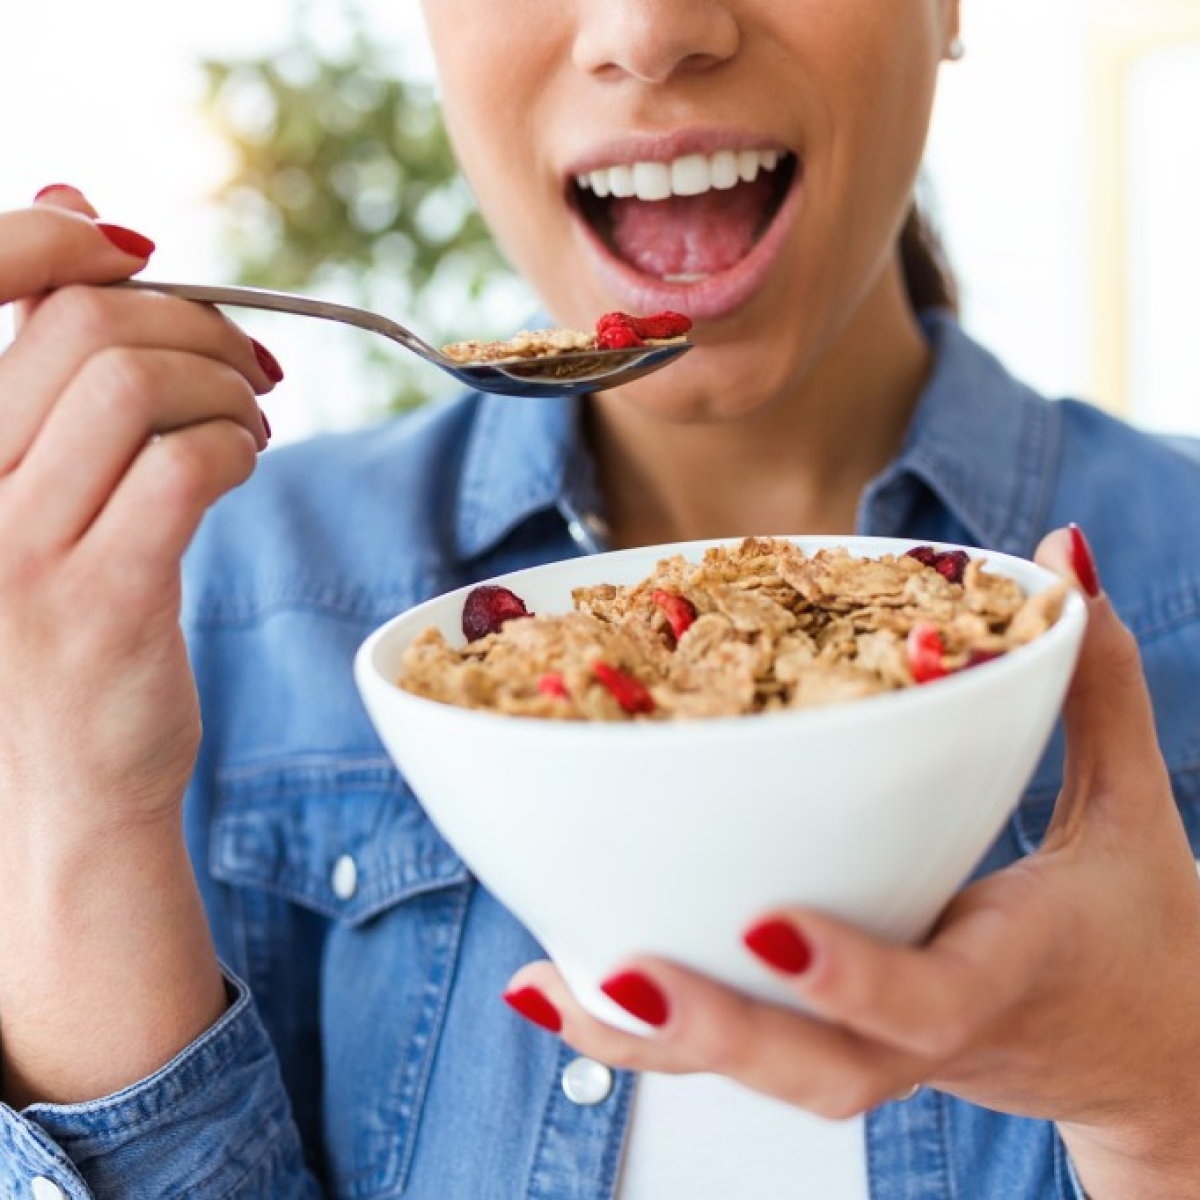 Veggies, cereals lower risk of memory loss